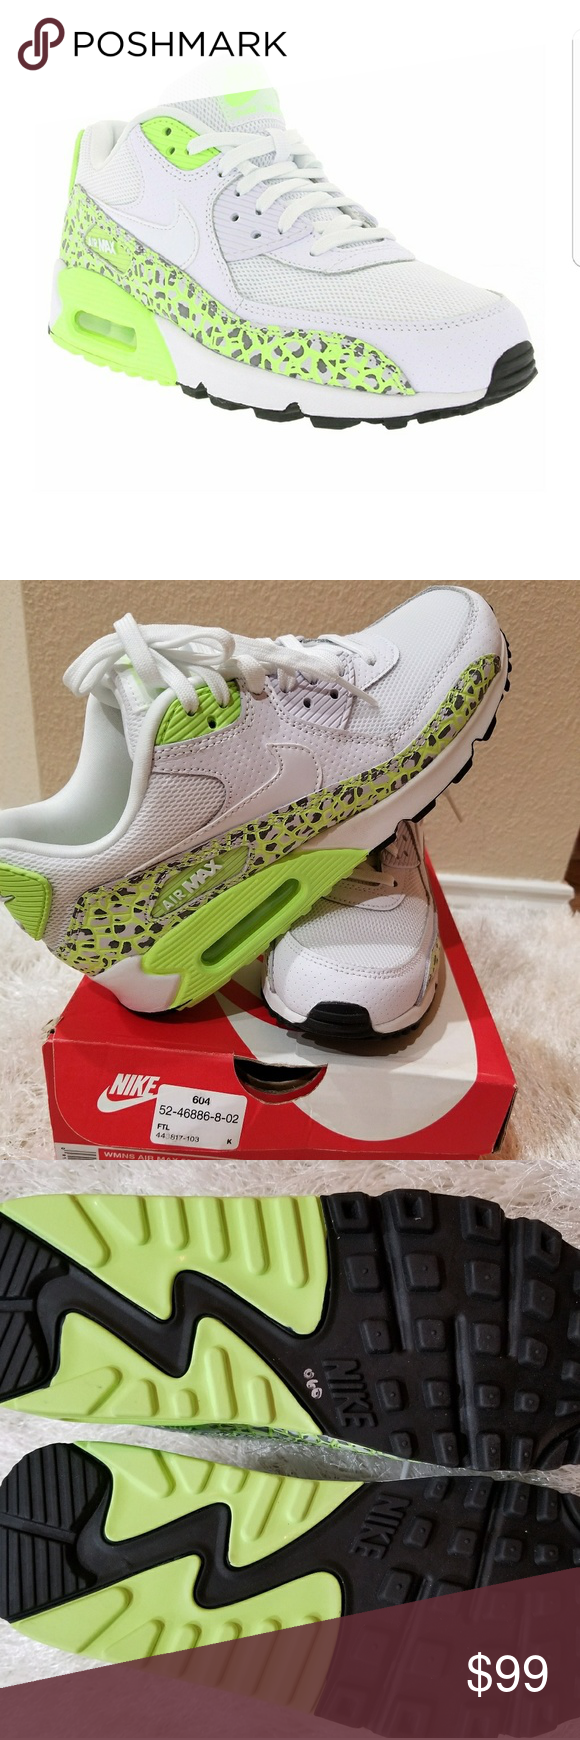 finest selection 38842 529e6 Nike Women s Air Max 90 Premium White Ghost Green Nike Women s Air Max 90  Premium White Ghost Green 443817-103 Size 7 Brand new with box.